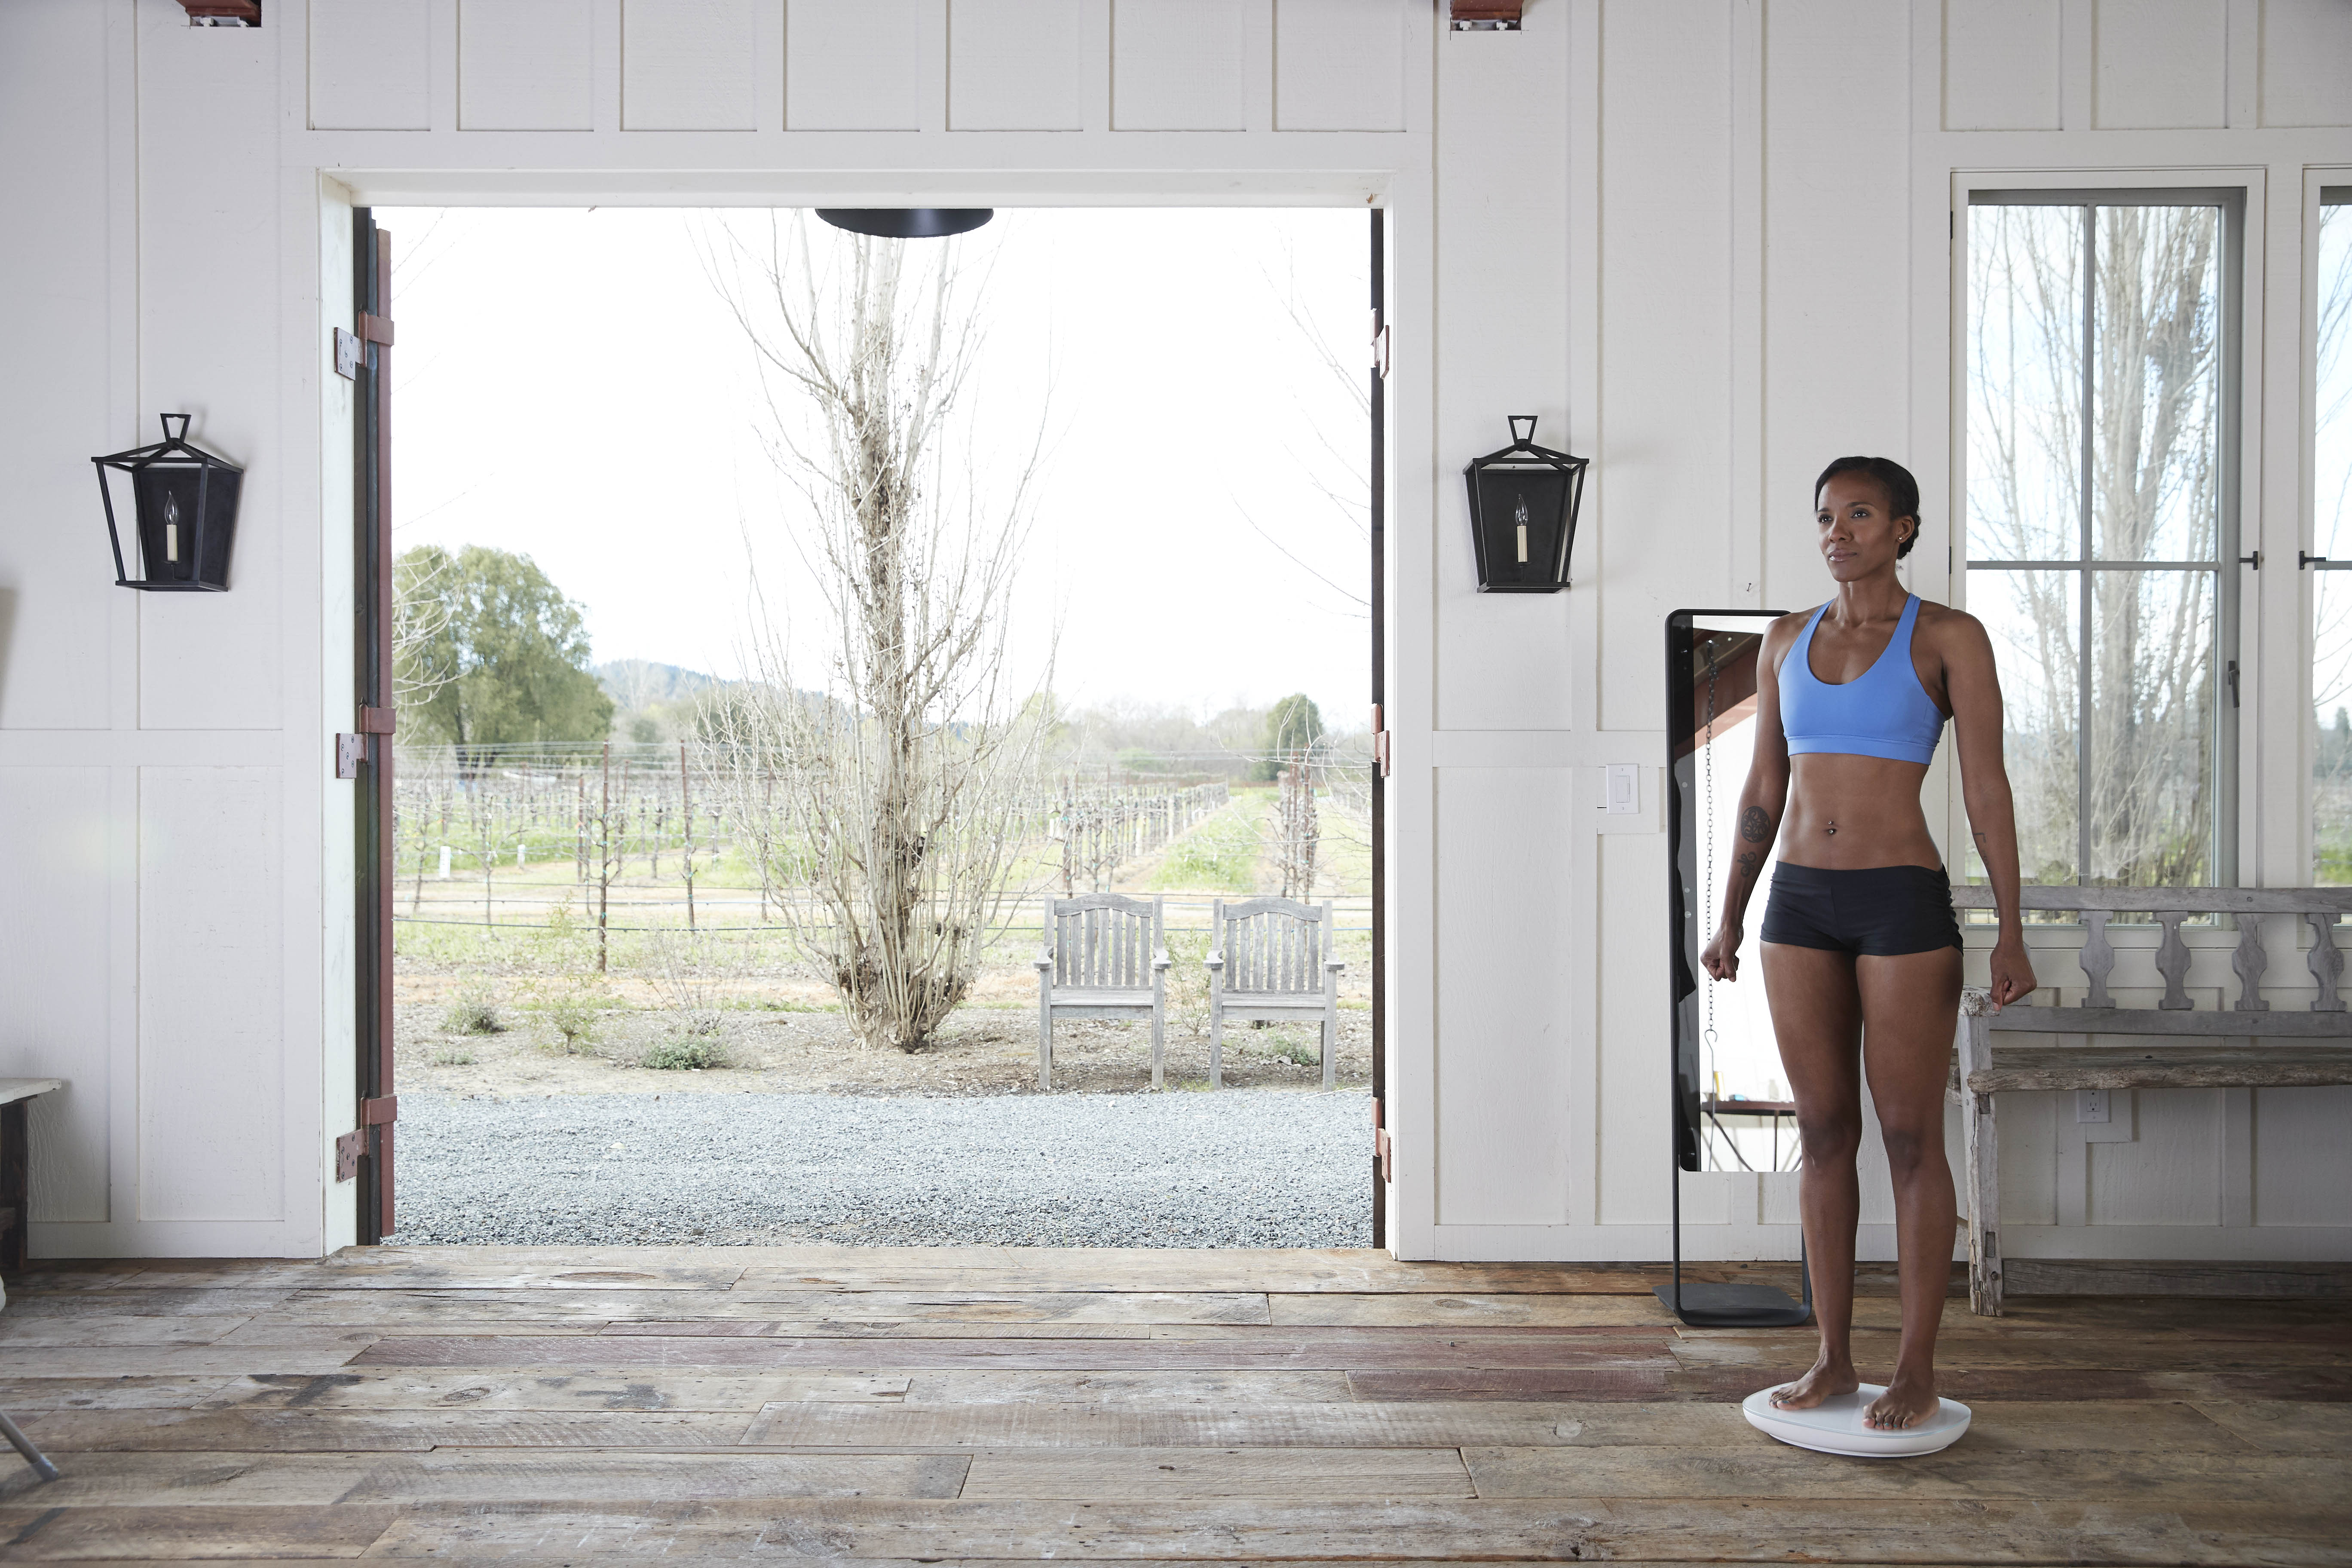 A model stands on the scale in a sports bra and shorts.